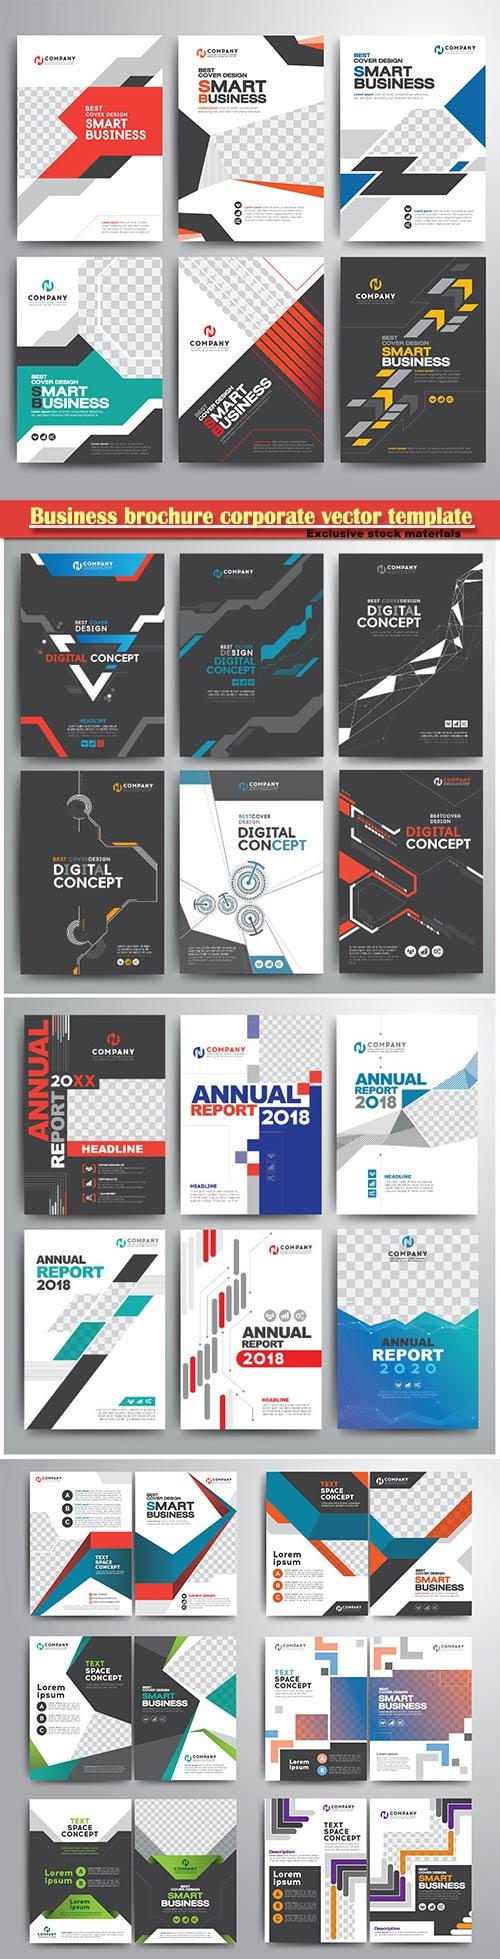 Business brochure corporate vector template, magazine flyer mockup # 2